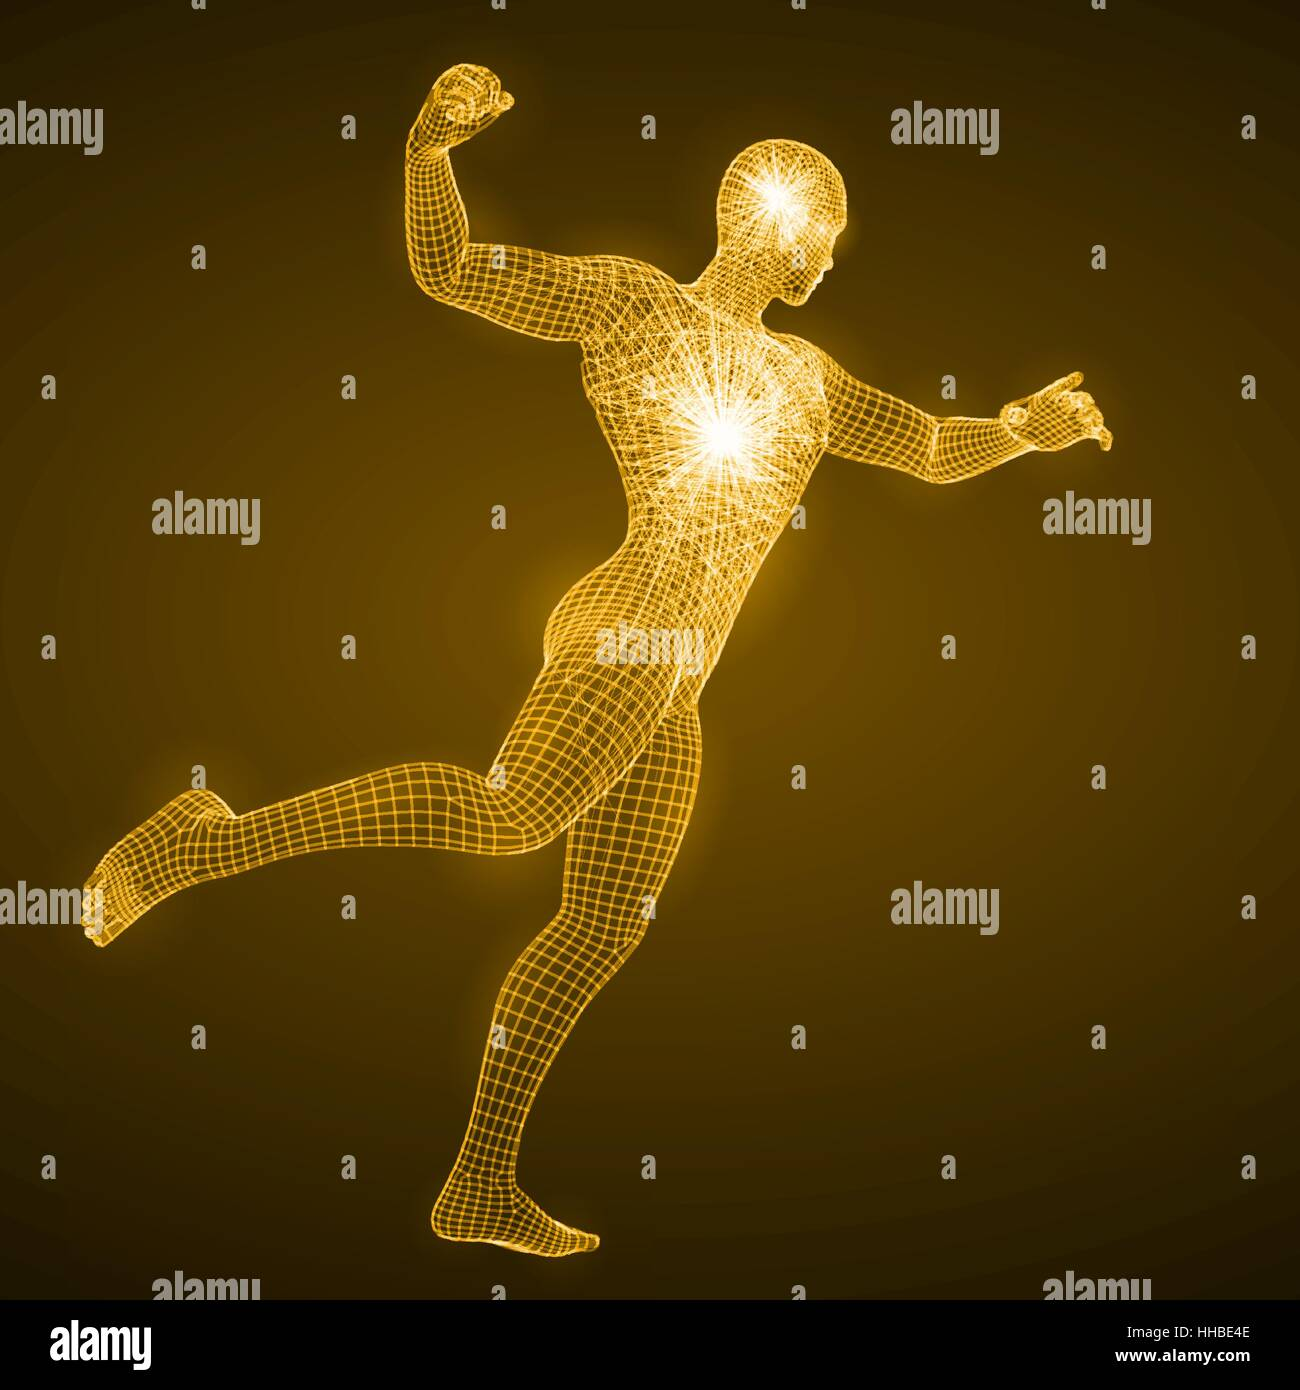 energy of the punching man - Stock Vector